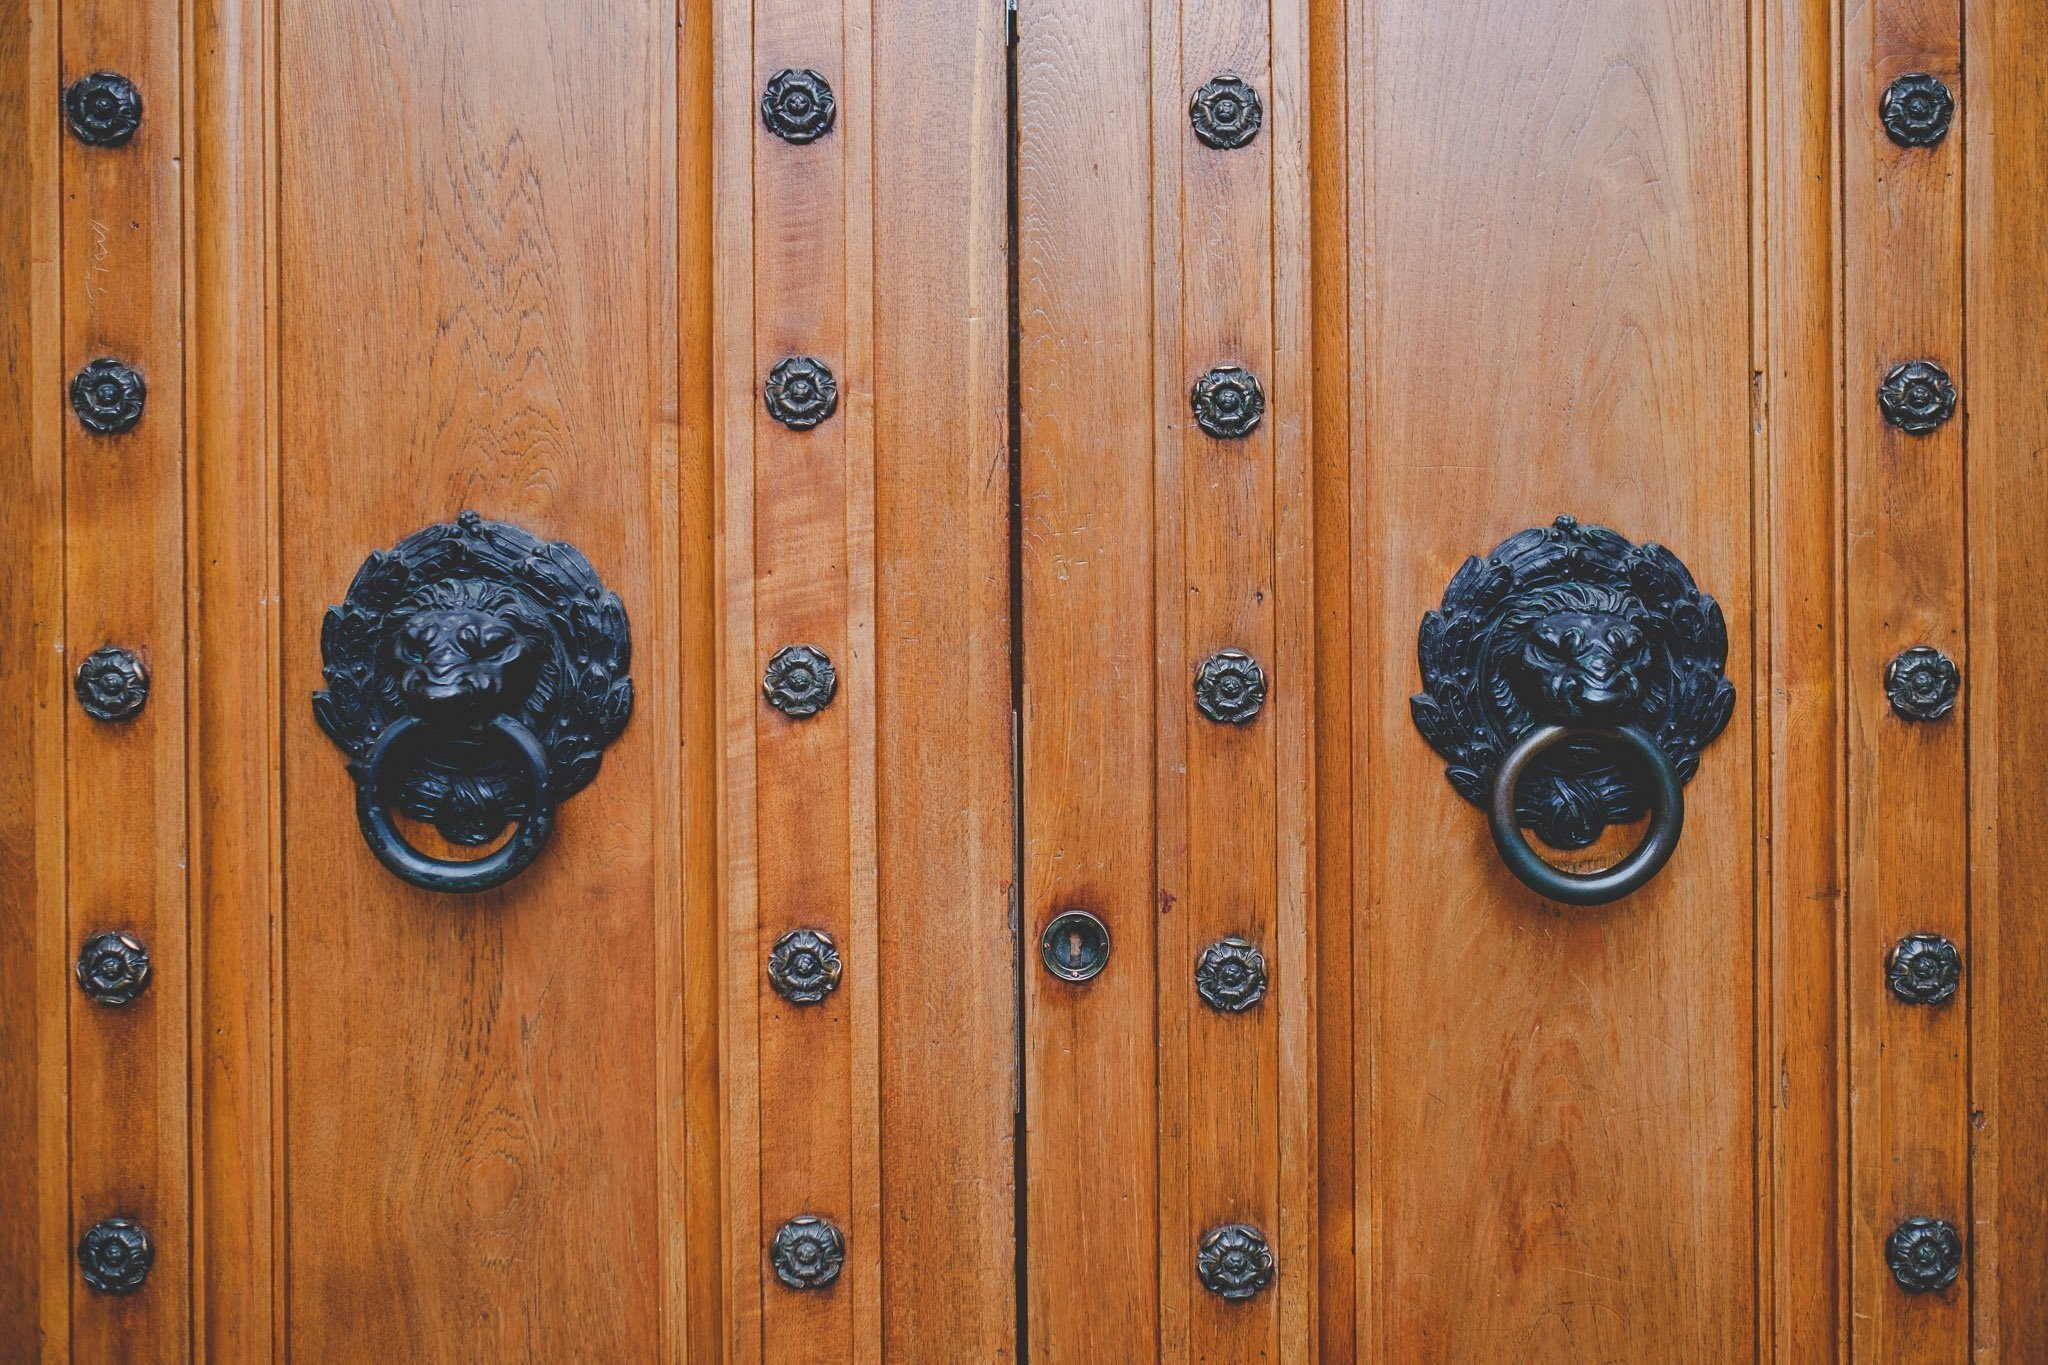 Two door knockers in the shape of a Lions head on a set of brown wooden doors